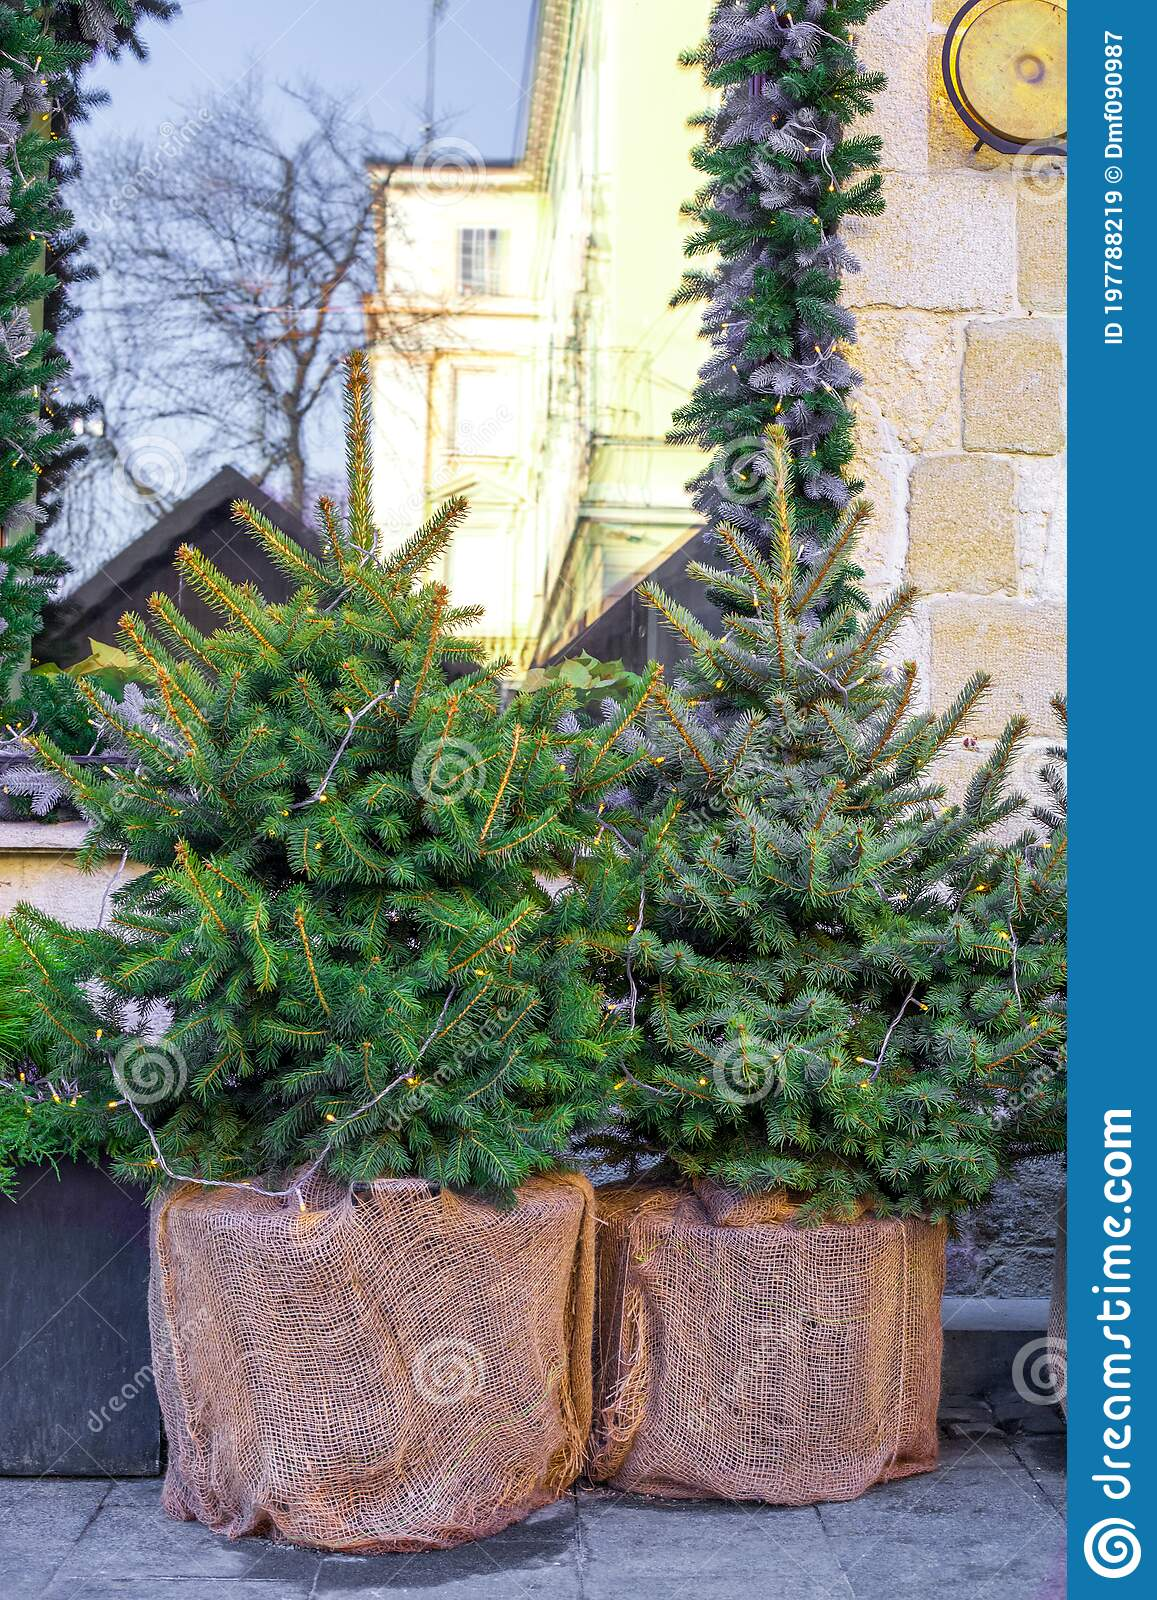 Small Illuminated Spruce Trees In Pots City Street In Front Of House Stock Image Image Of Evergreen Conifer 197788219